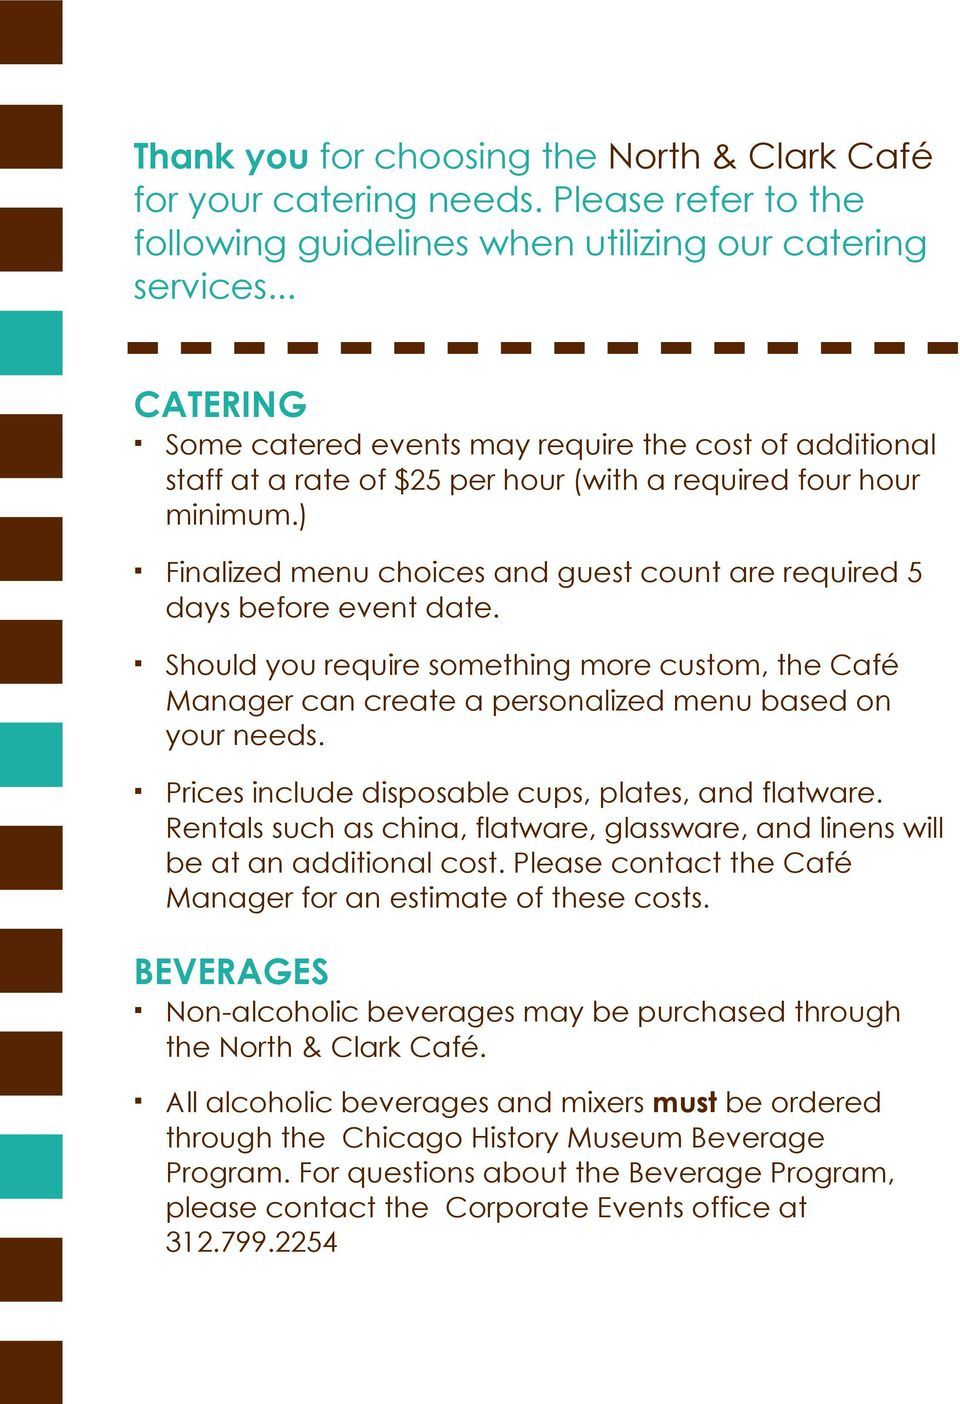 ) Finalized menu choices and guest count are required 5 days before event date. Should you require something more custom, the Café Manager can create a personalized menu based on your needs.